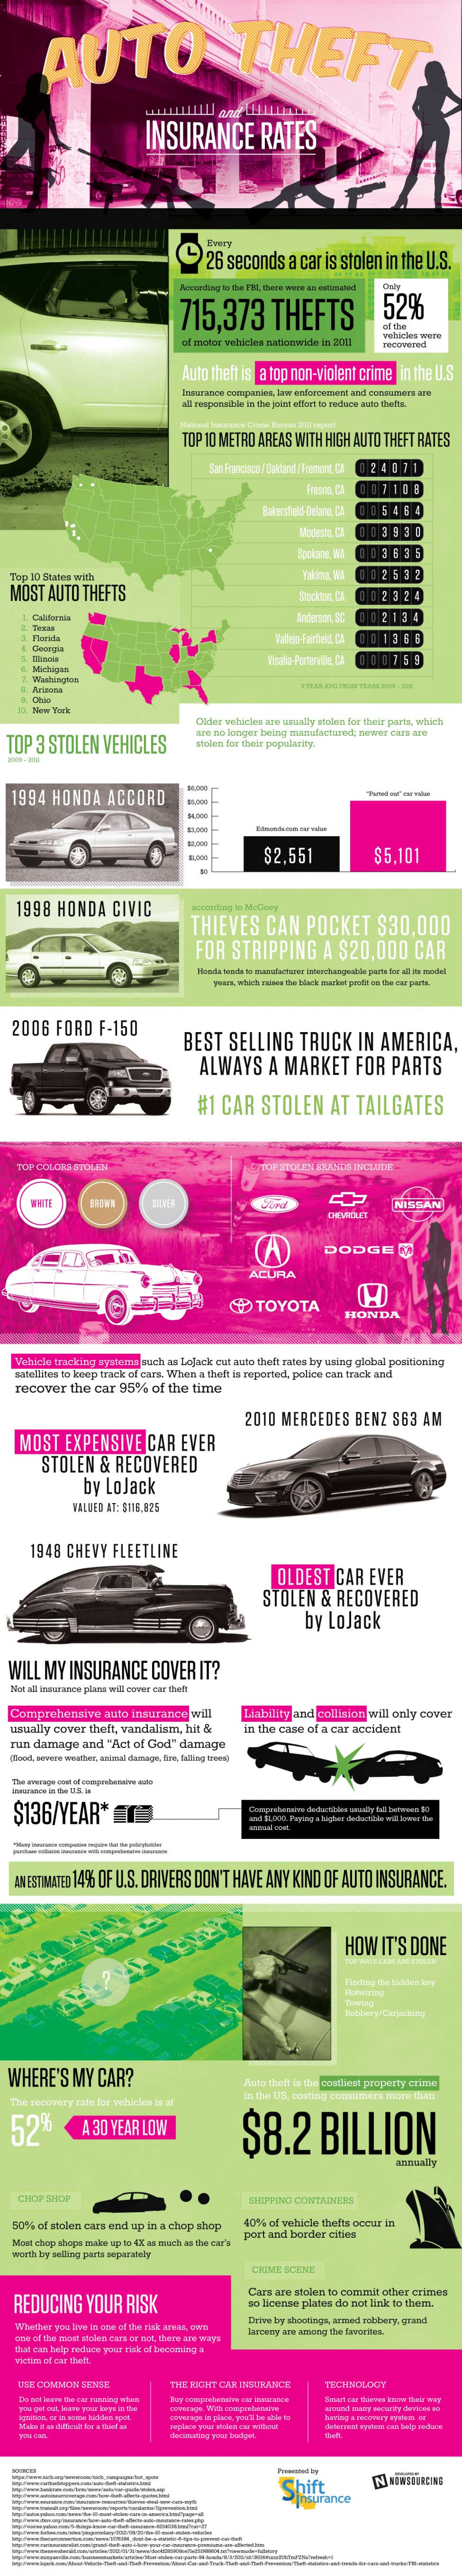 Auto Theft and Insurance Rates Infographic